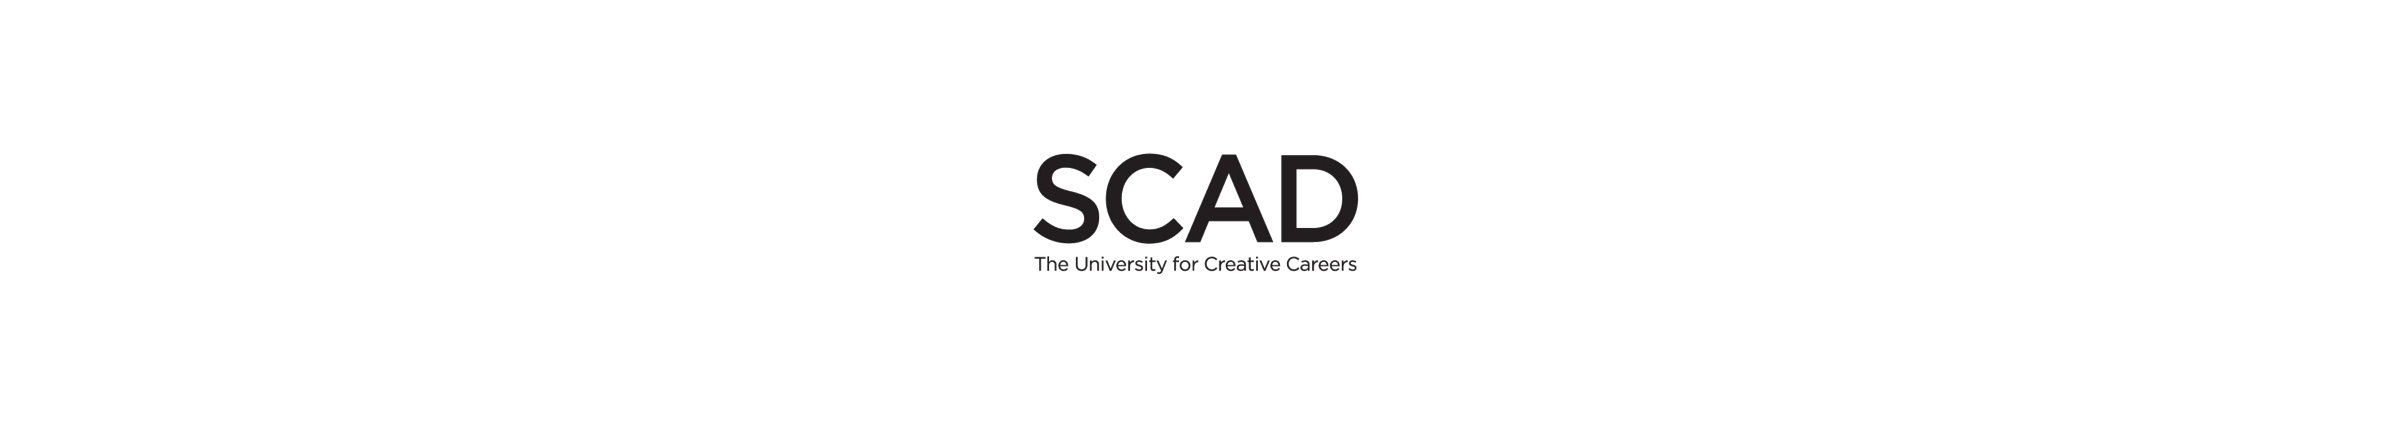 Luxarity Pop Up - Impact - SCAD.png